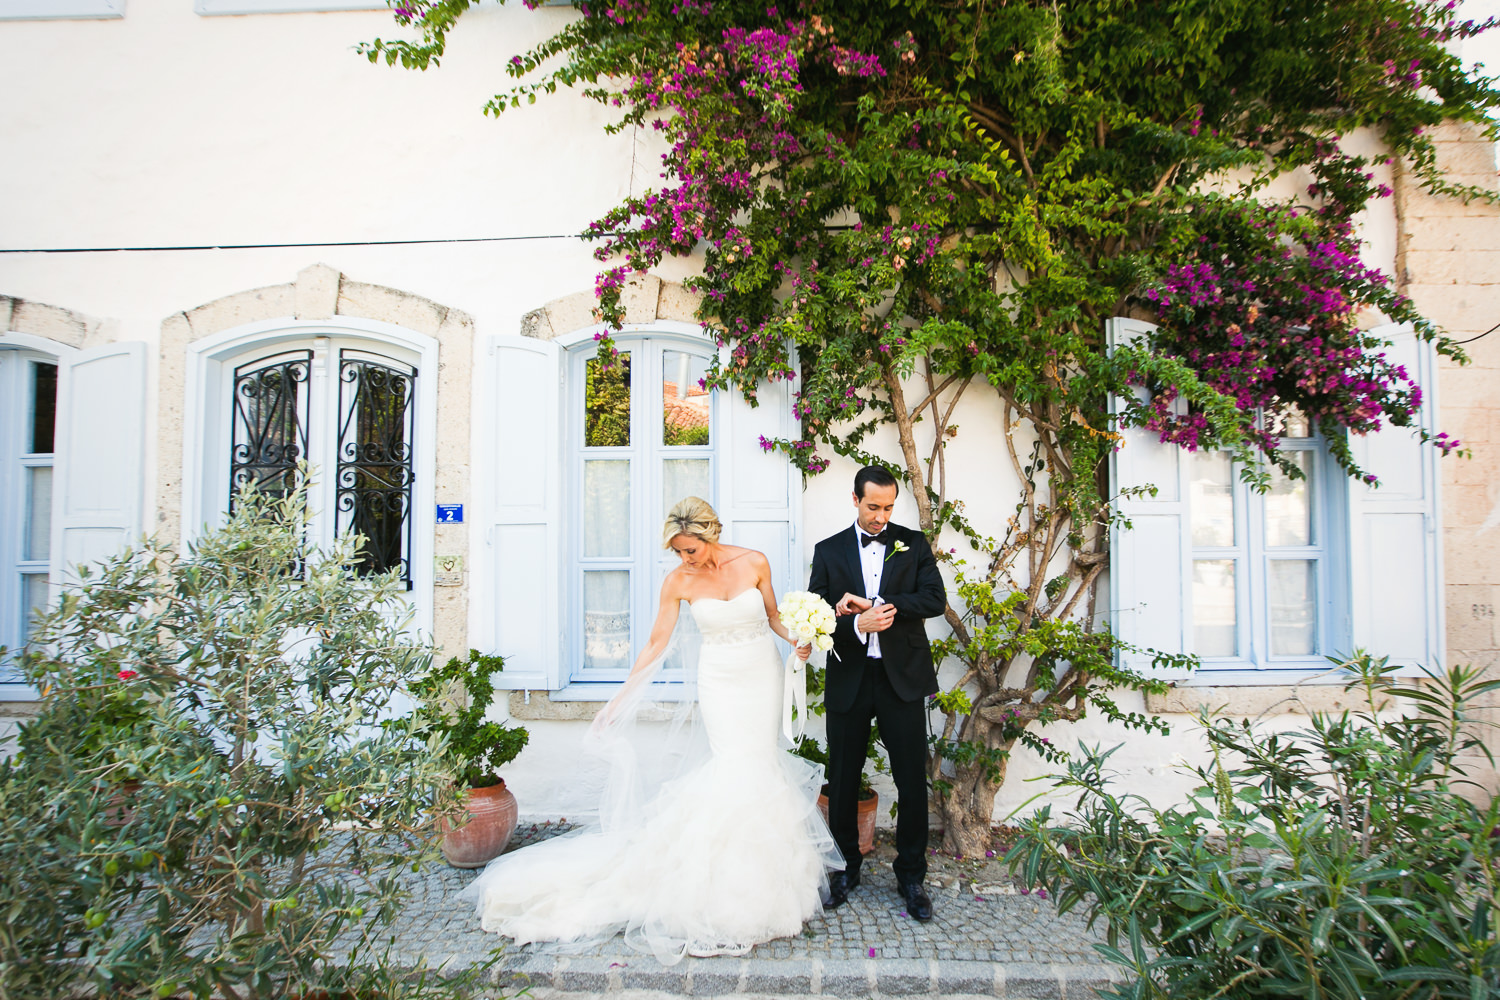 Turkey Wedding - Turkish bride and Persian groom walking together in Alcati